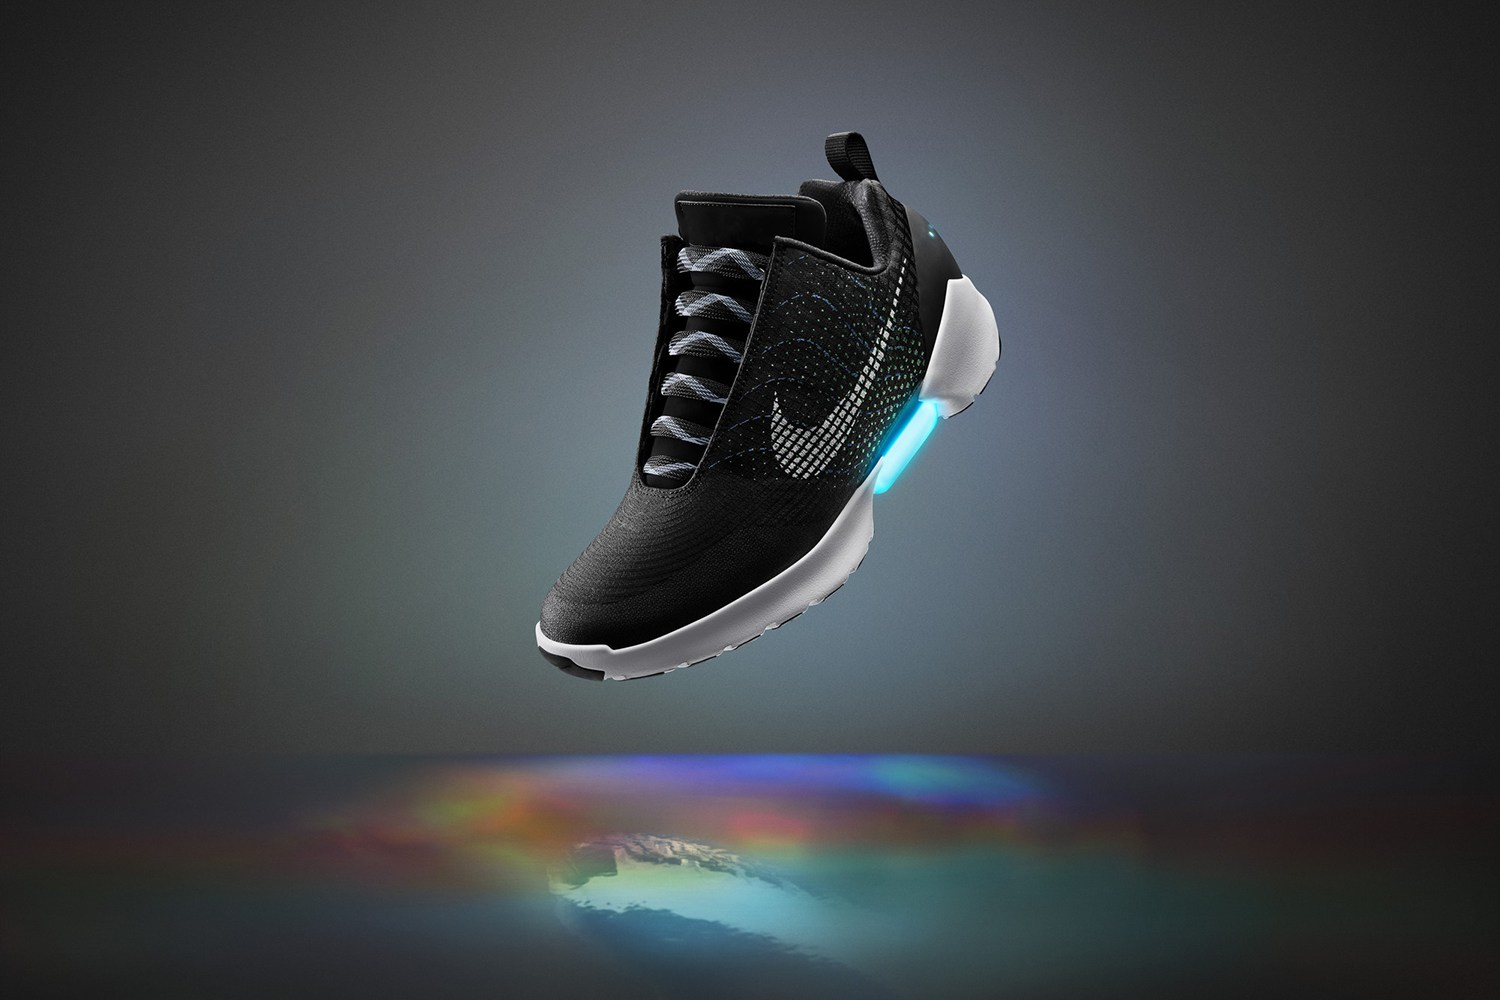 Nike's HyperAdapt 1.0 feature Exciting New Power Laces